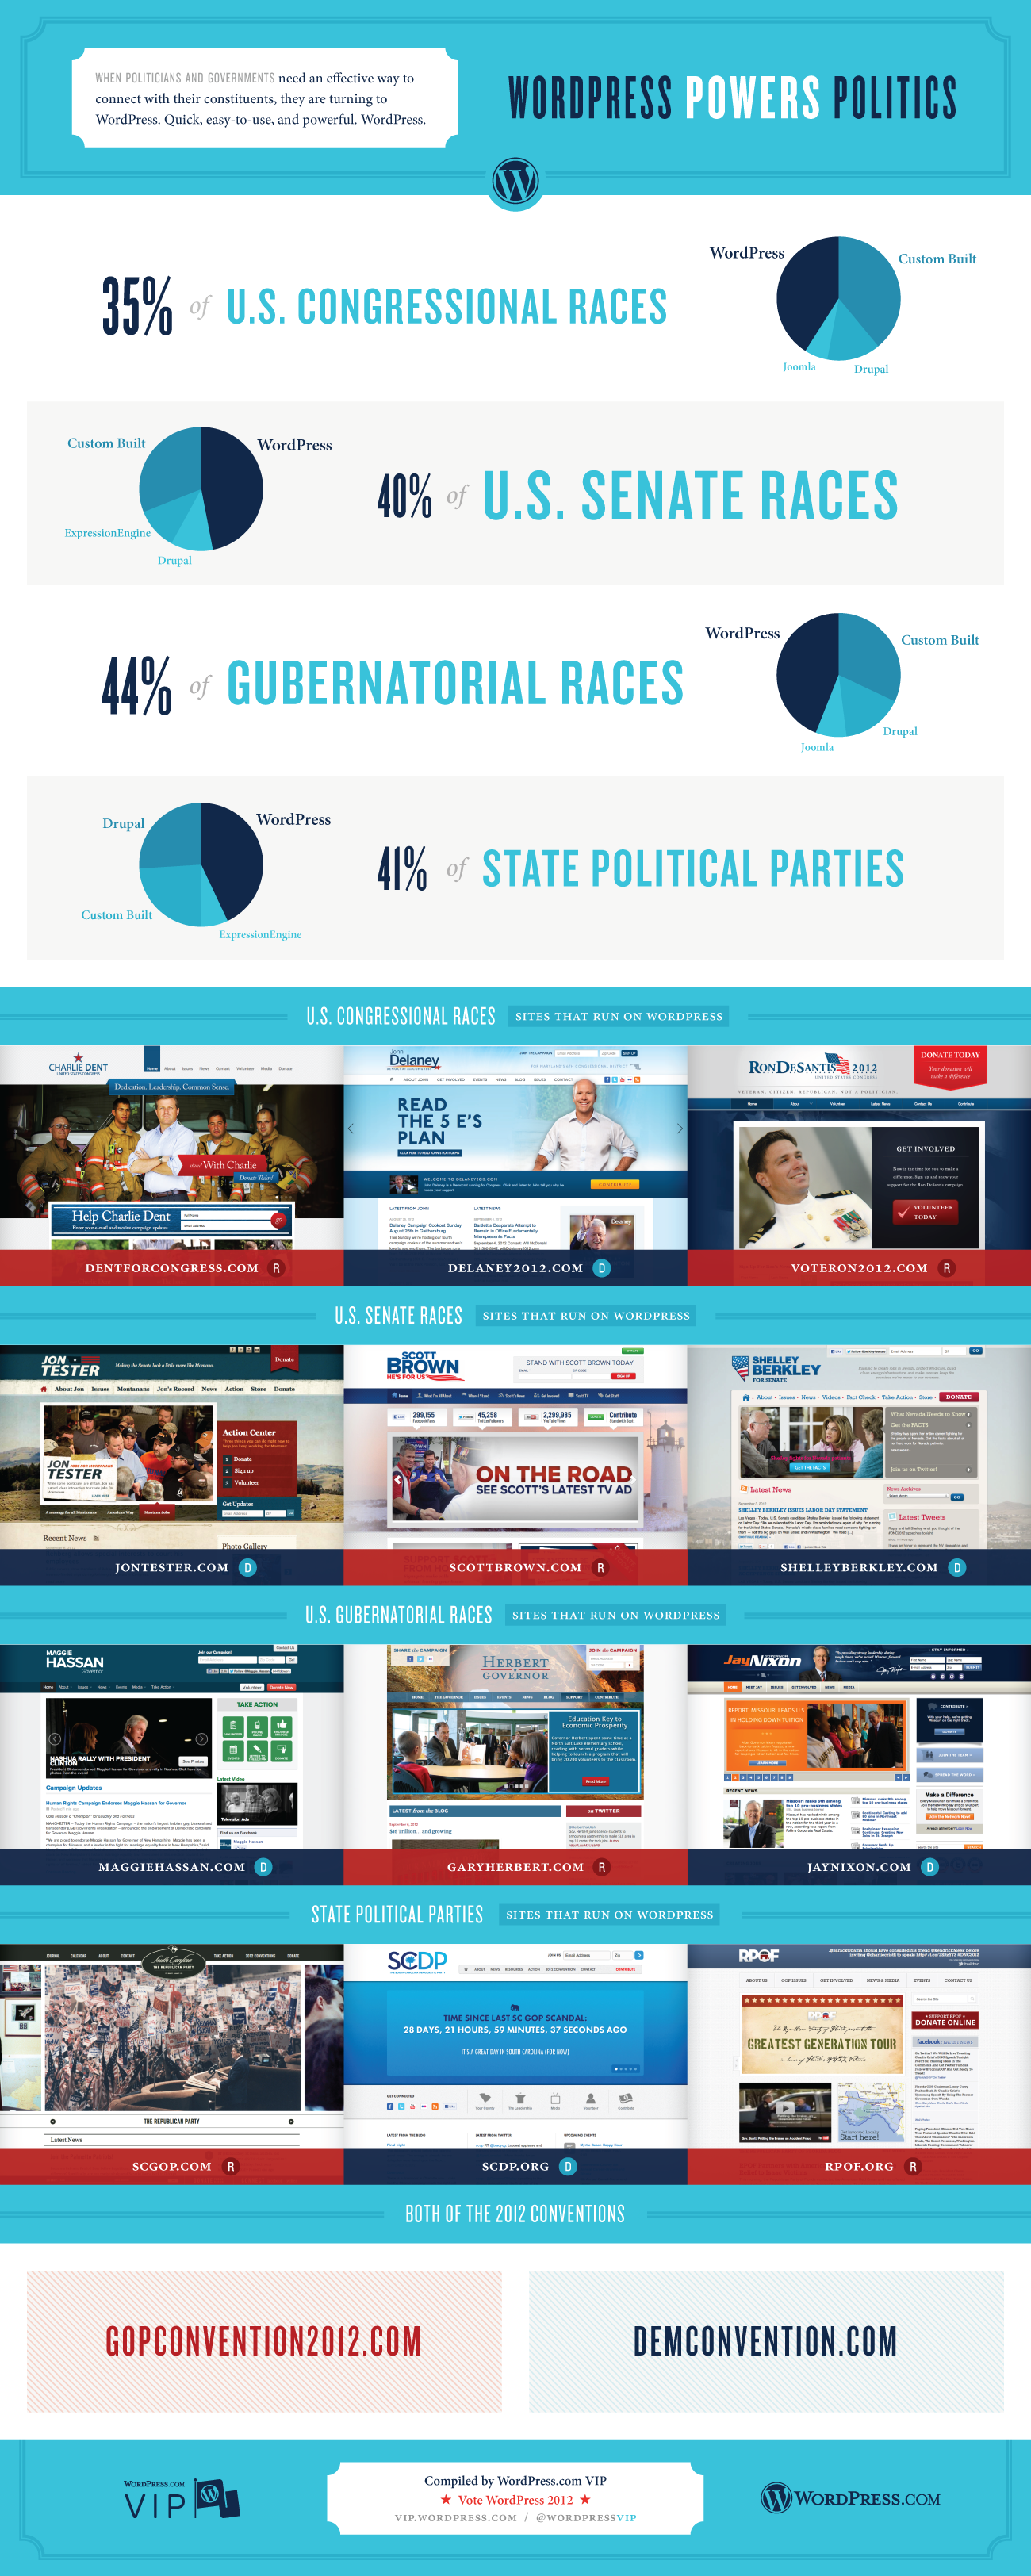 WordPress Powers Politics - Infographic